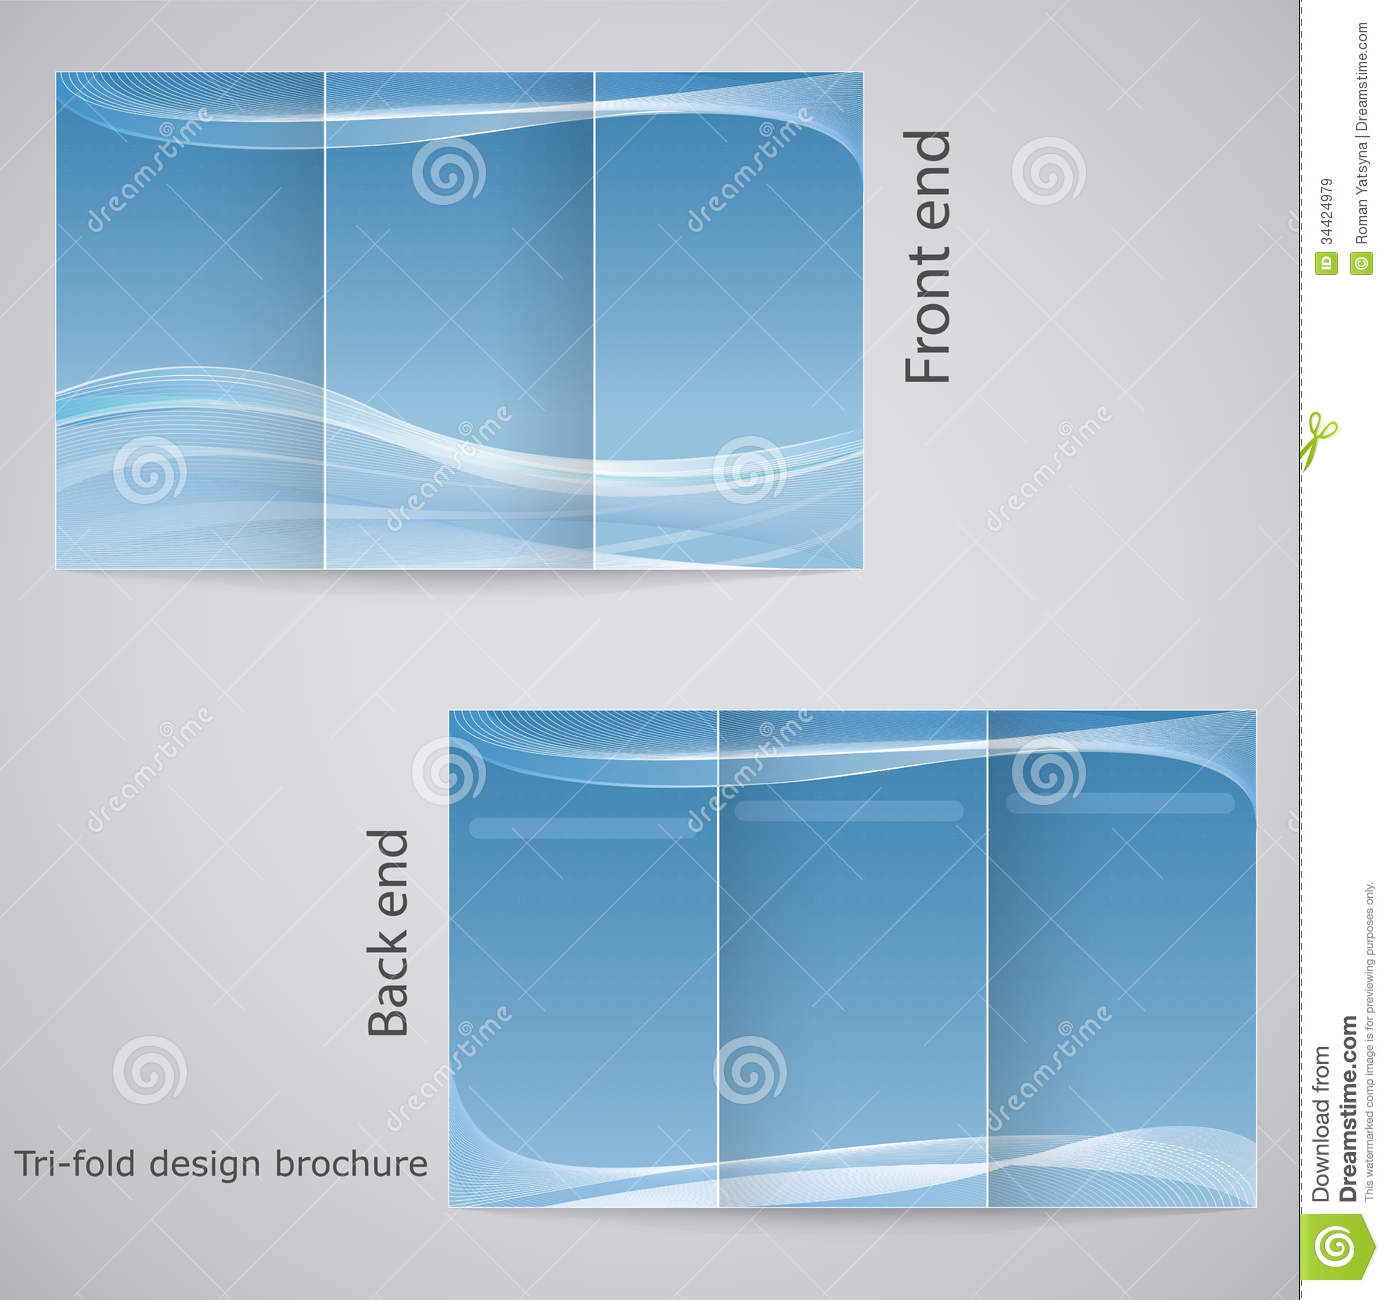 three fold brochure template - 17 tri fold brochure design templates images tri fold